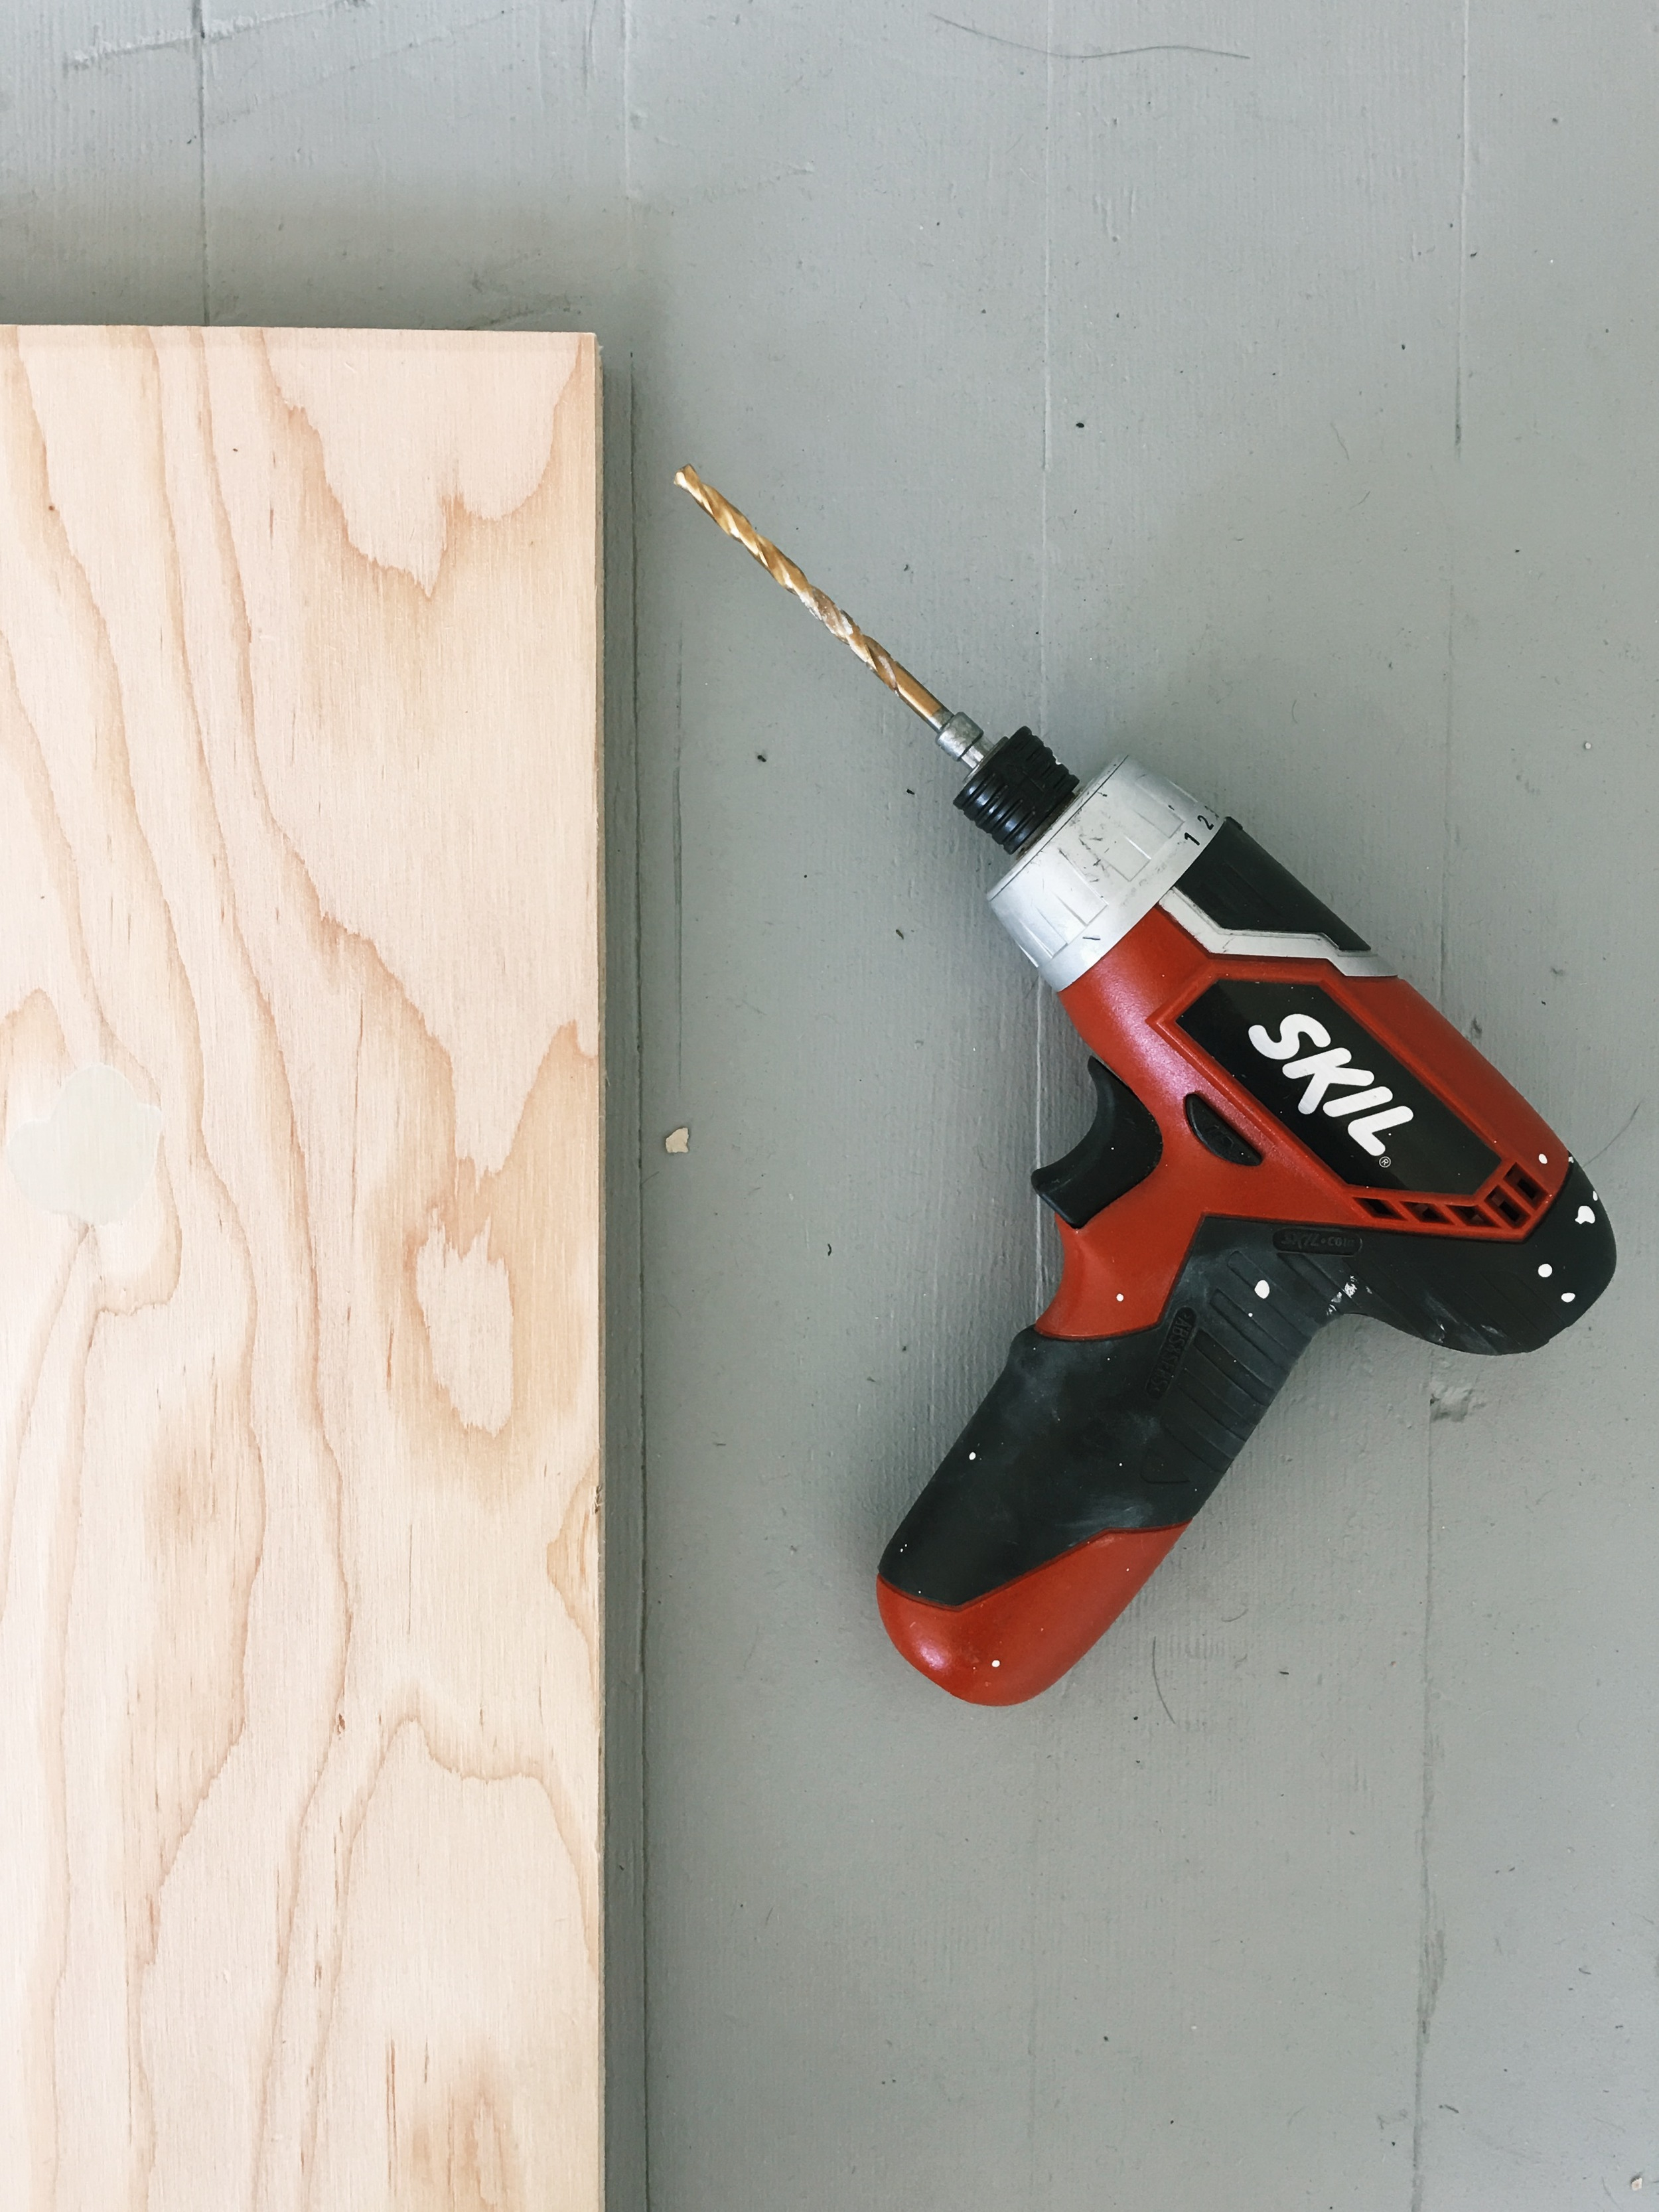 STEP 1: Measure out 1.5 inches from the edge and make a small mark to where you will drill your hole.